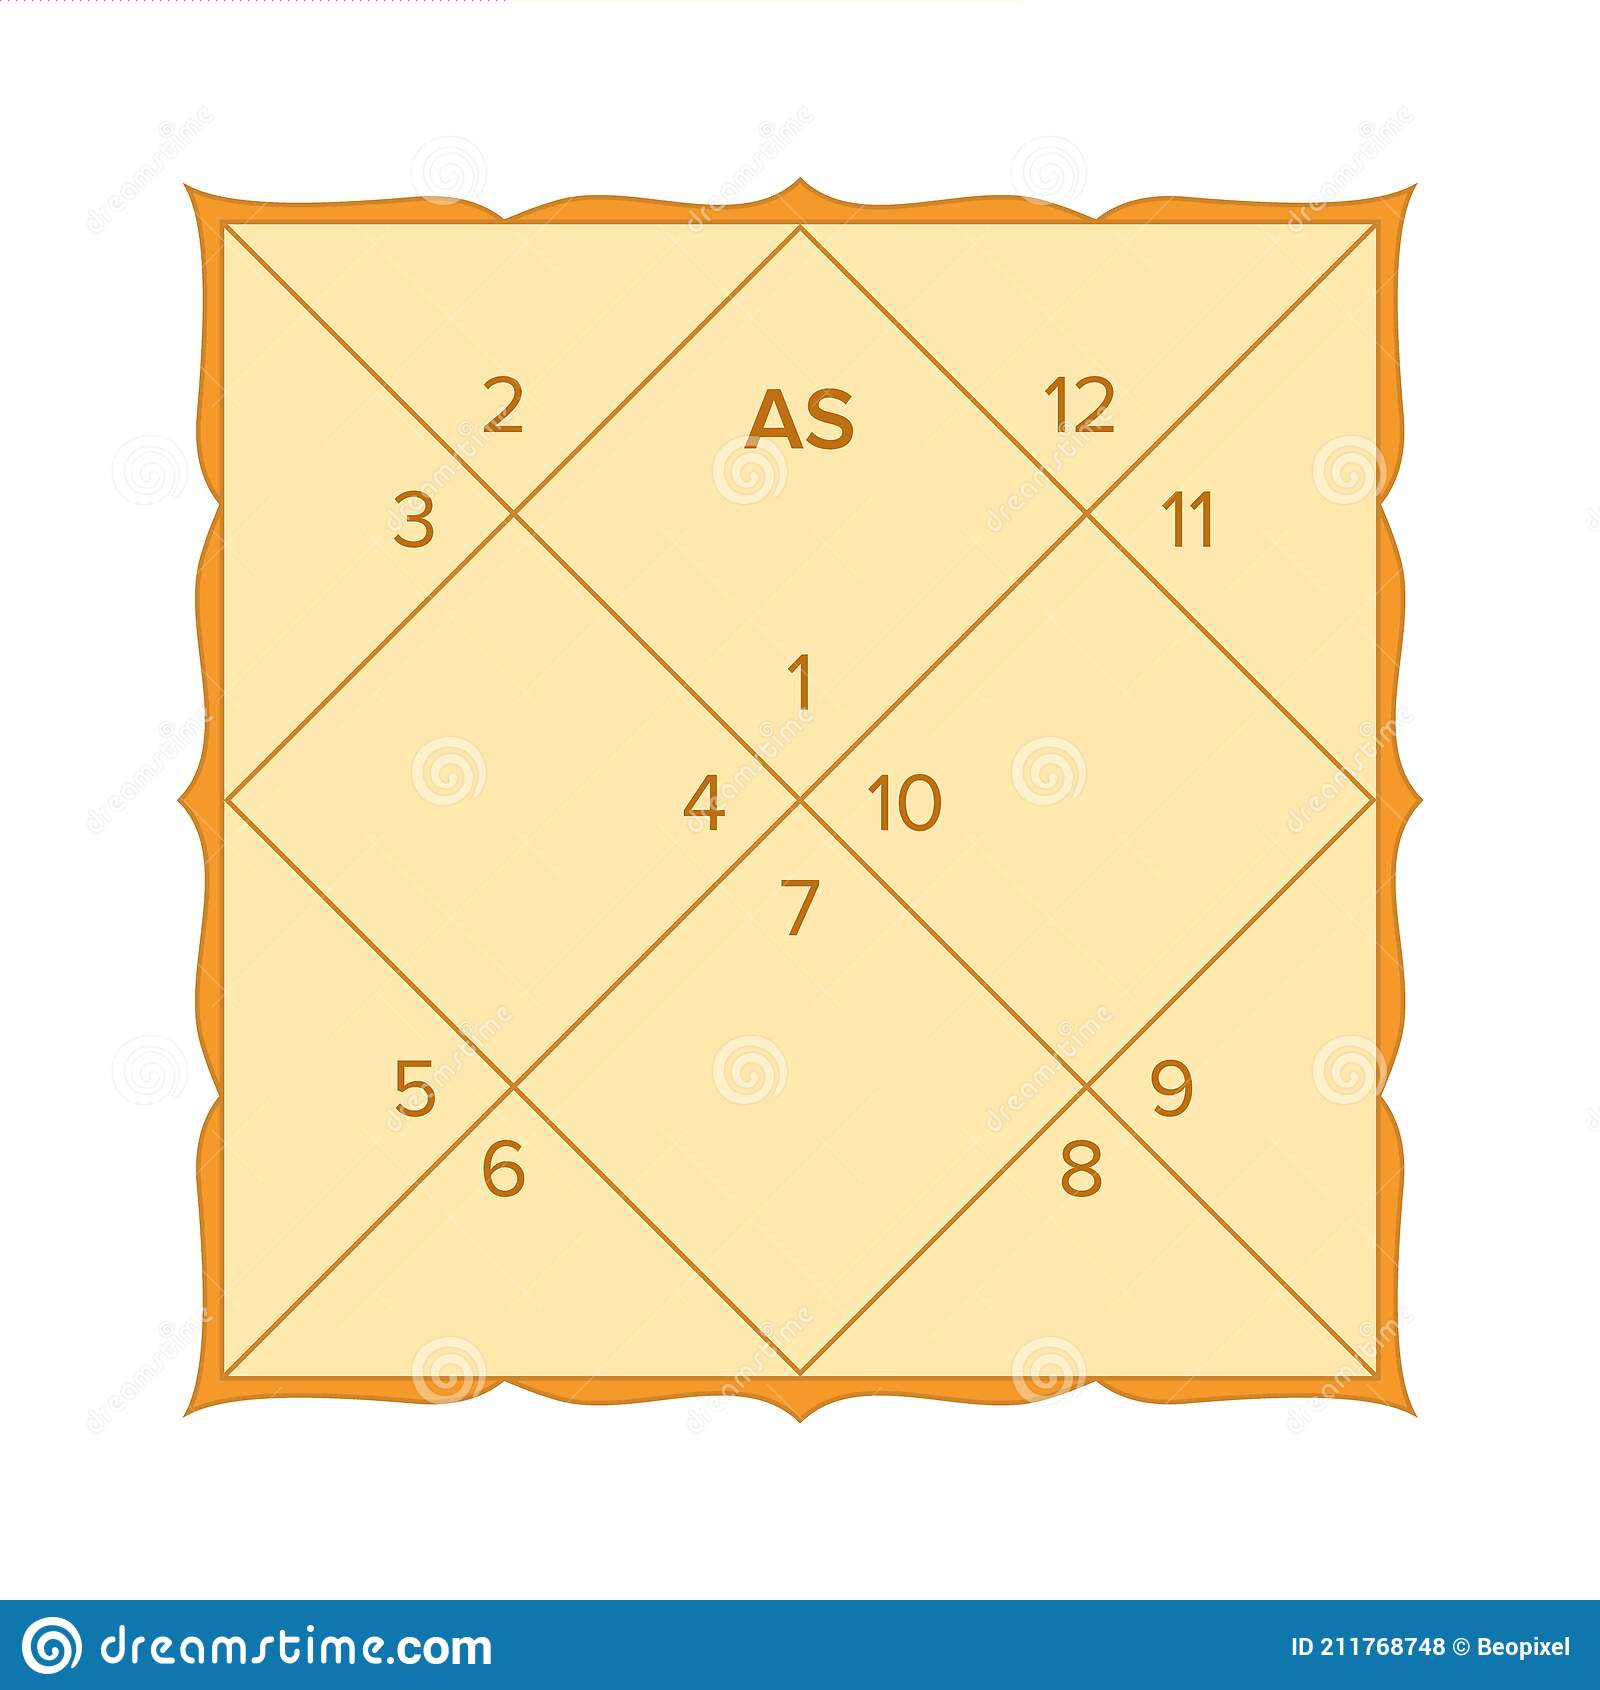 Vedic Astrology Birth Chart Template in Northern Indian Diamond ...